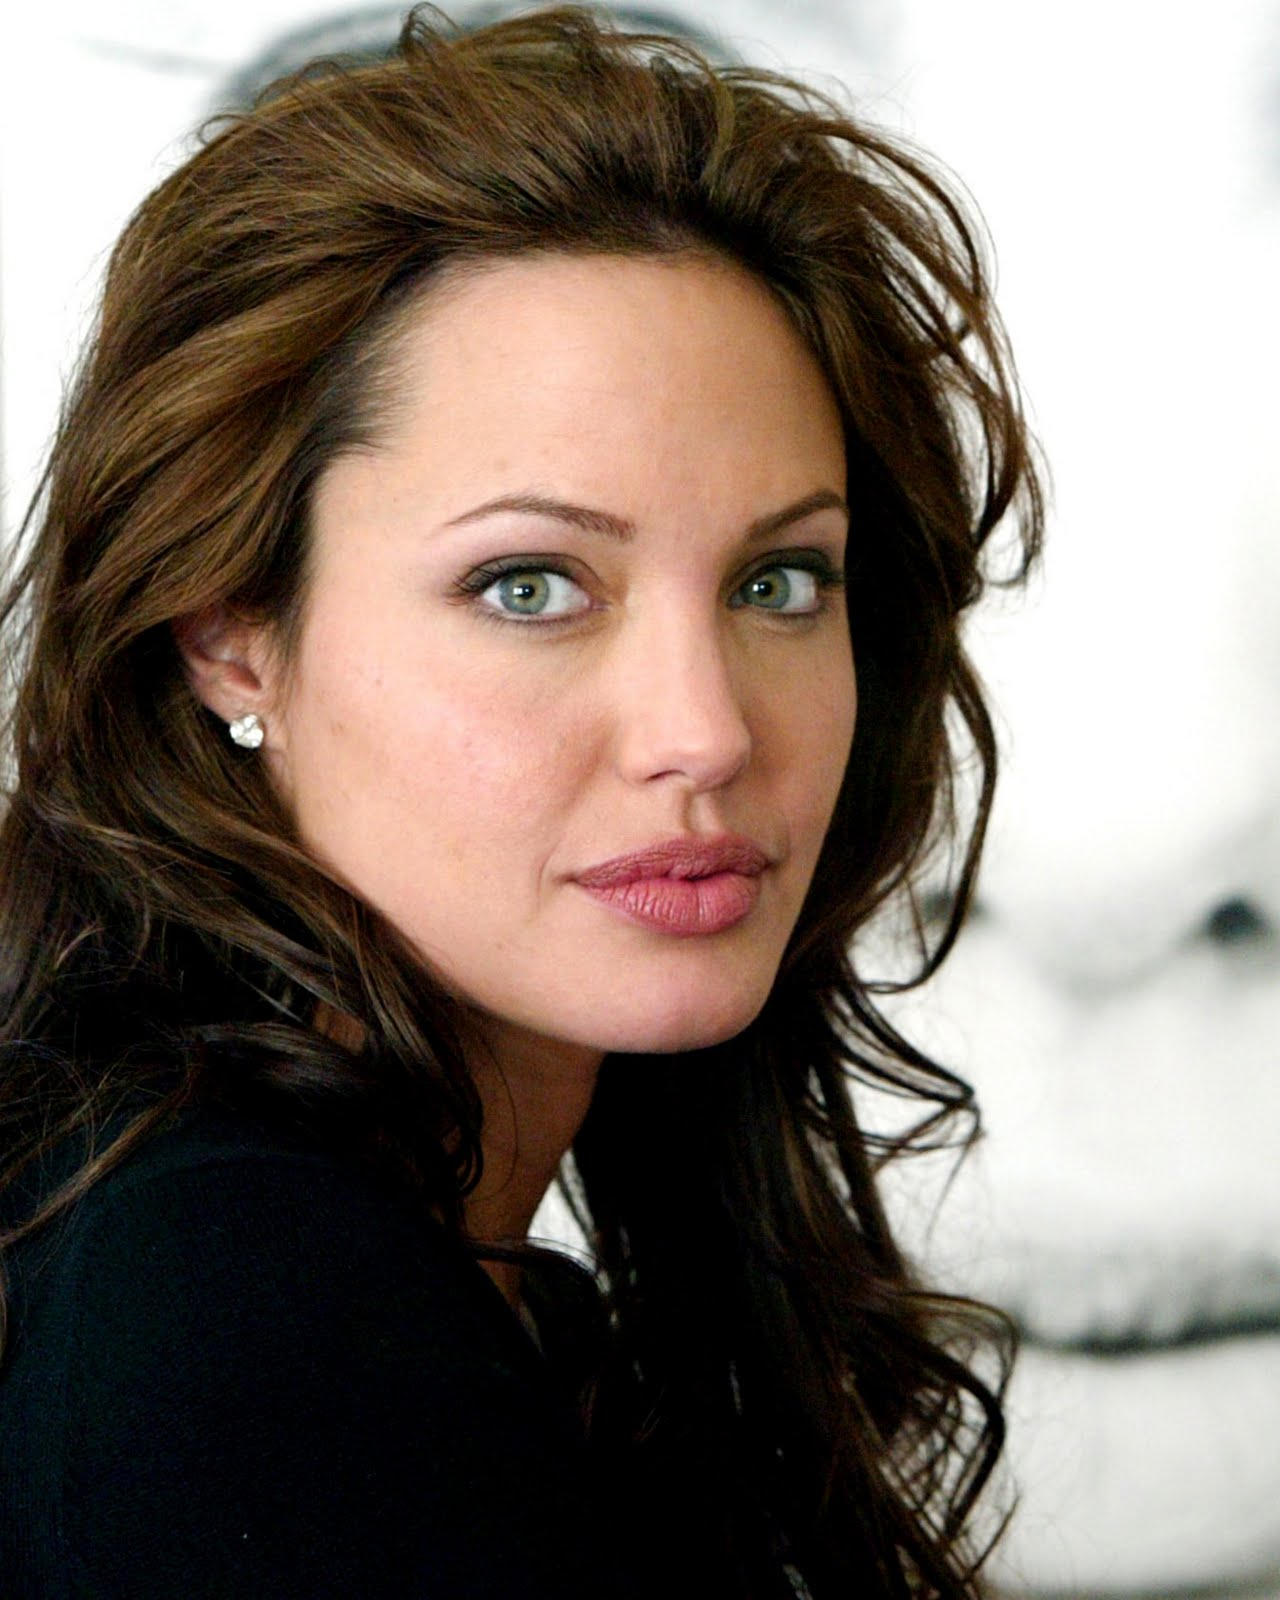 Angelina Jolie Look Using All Drugstore Makeup: Hot Actress Images: Angelina Jolie's Spicy Pictures, Images